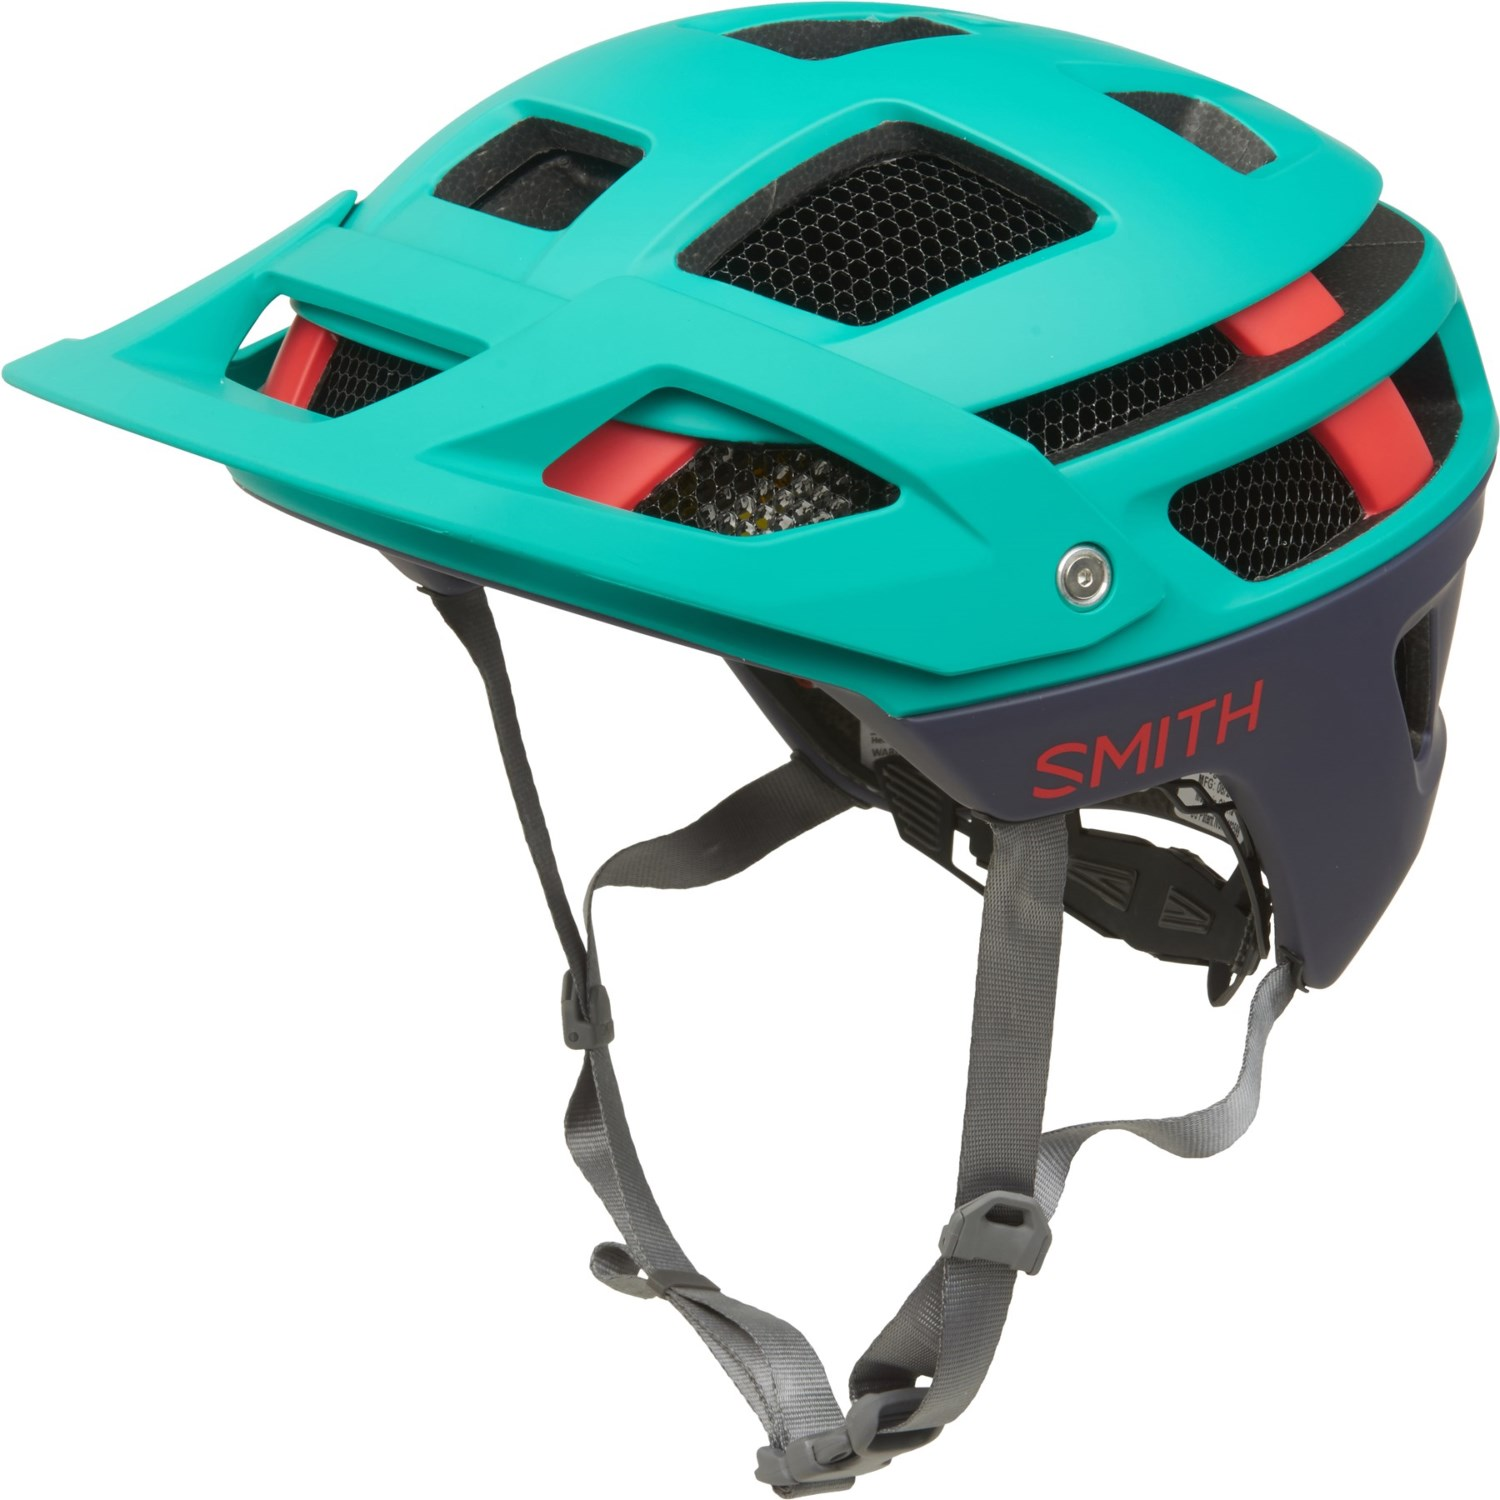 Smith Forefront 2 Mips Mountain Bike Helmet For Men And Women